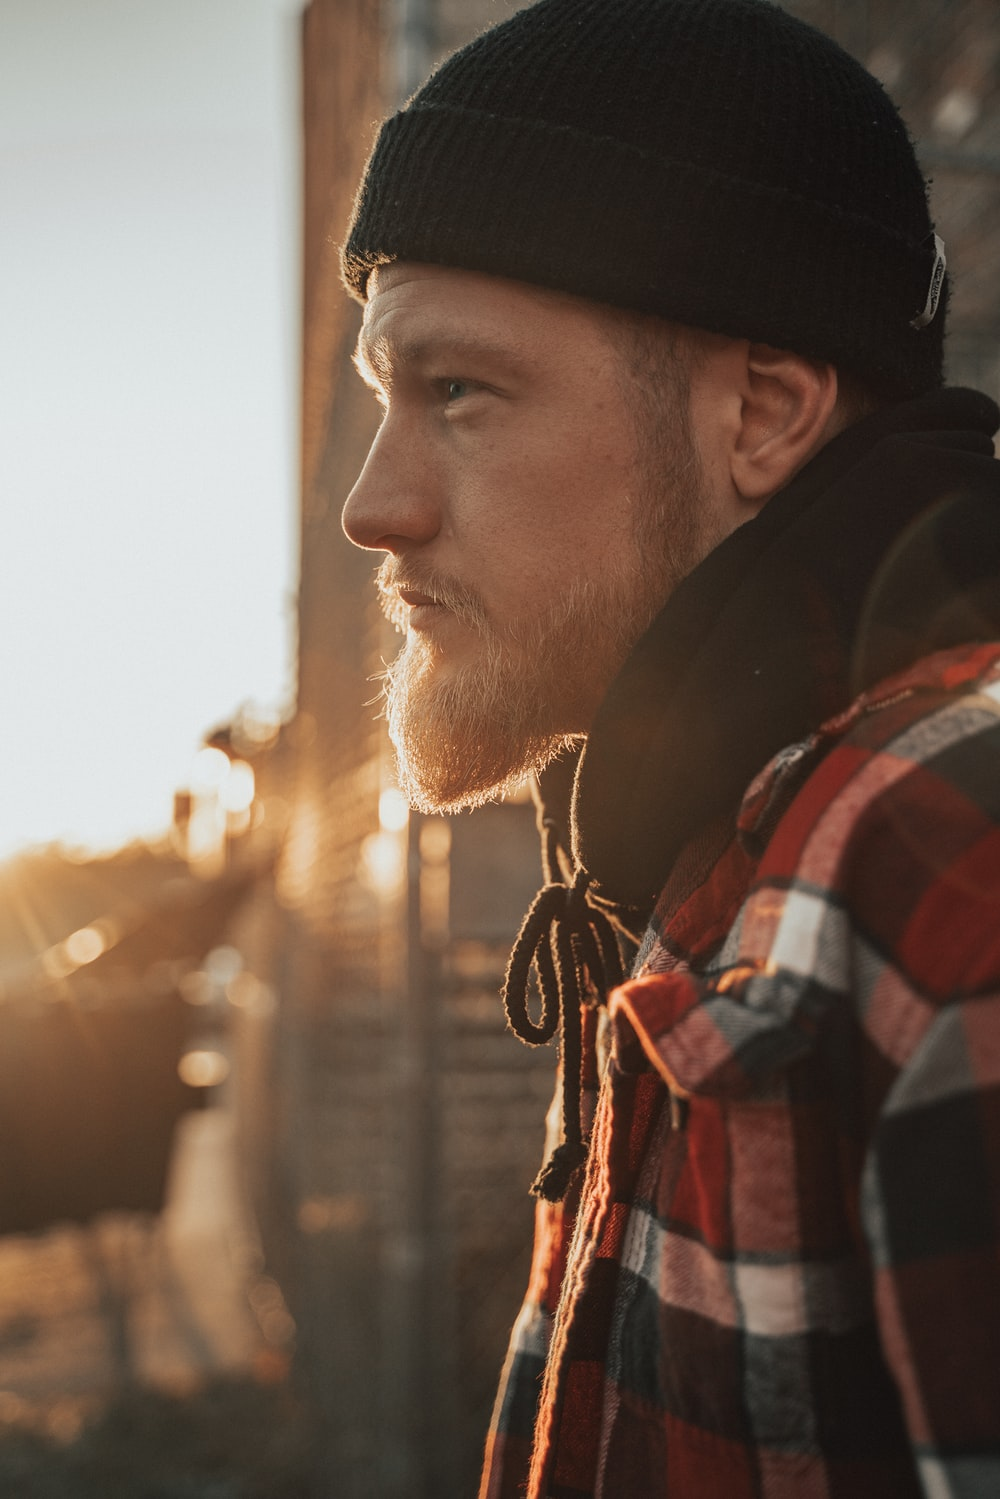 man in red, white, and black plaid jacket and beanie cap